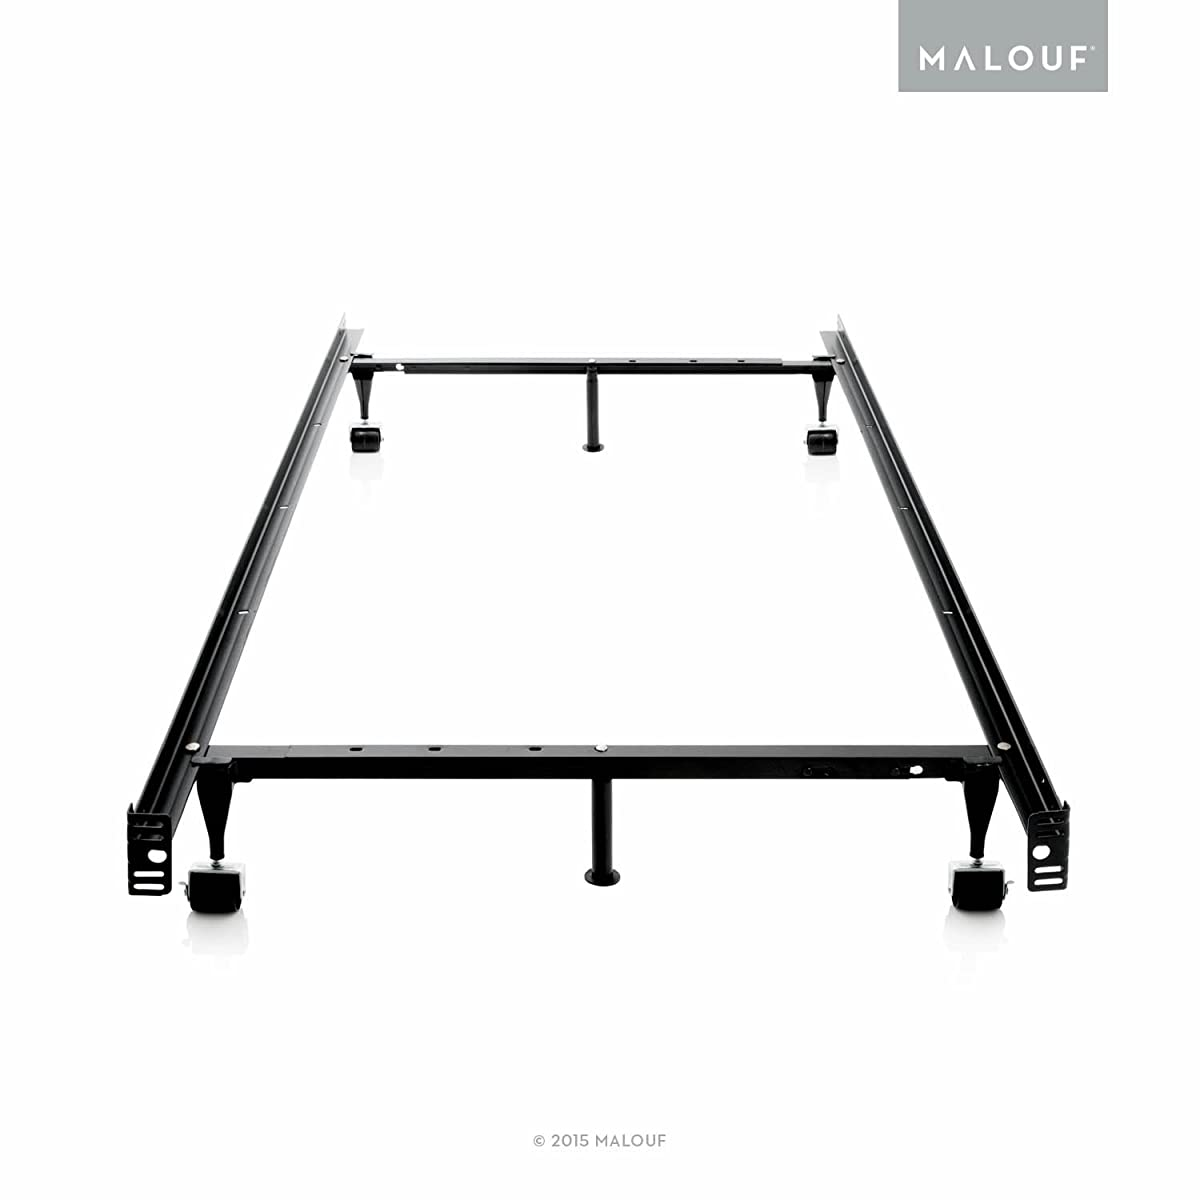 STRUCTURES by Malouf Heavy Duty Adjustable Metal Bed Frame with Center Support and Rug Rollers - (Queen, Full XL, Full, Twin XL, Twin)